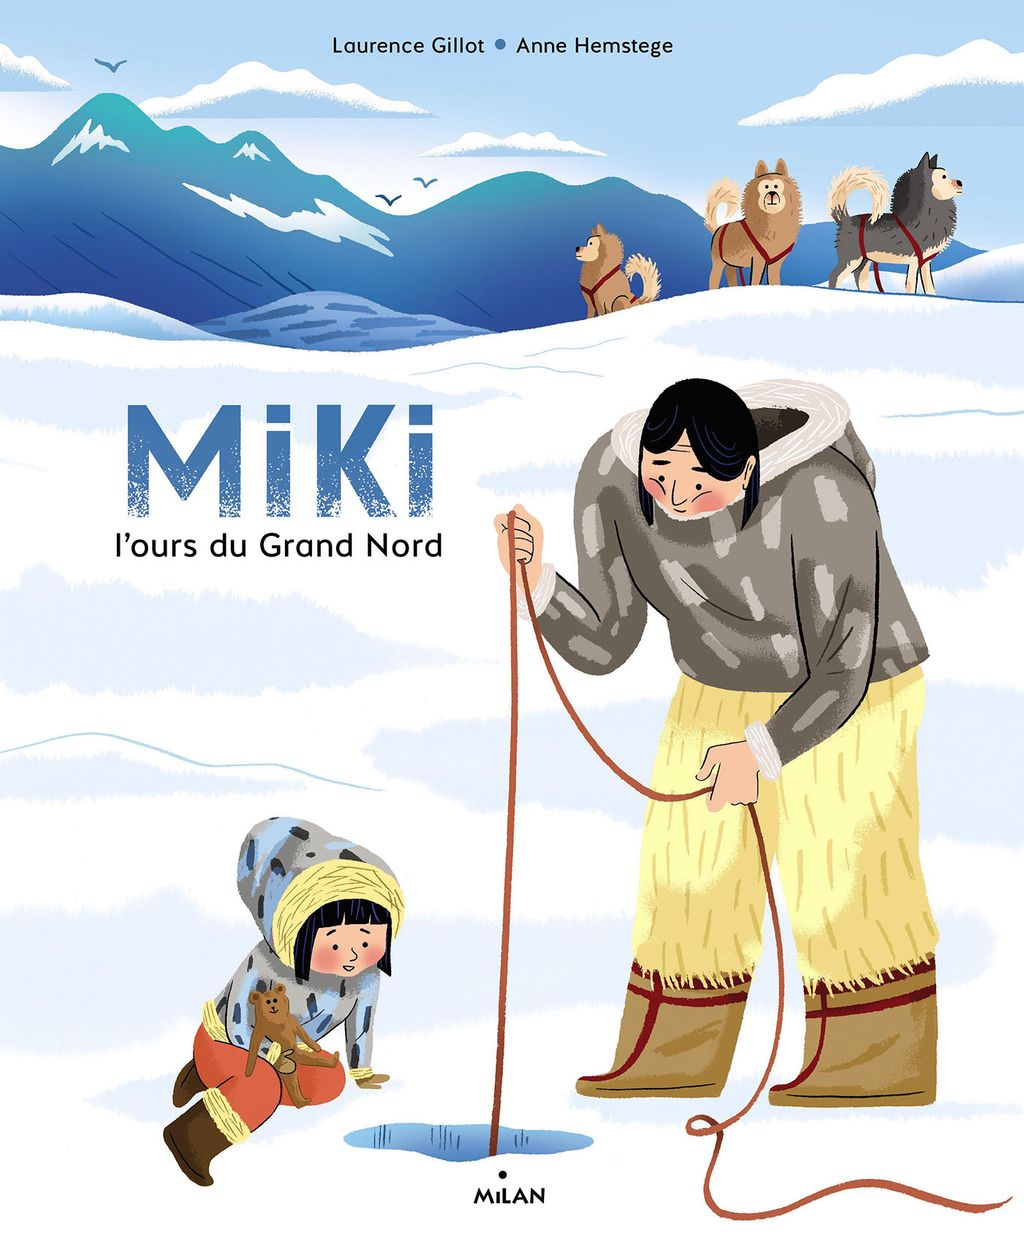 «Miki, l'ours du Grand Nord» cover